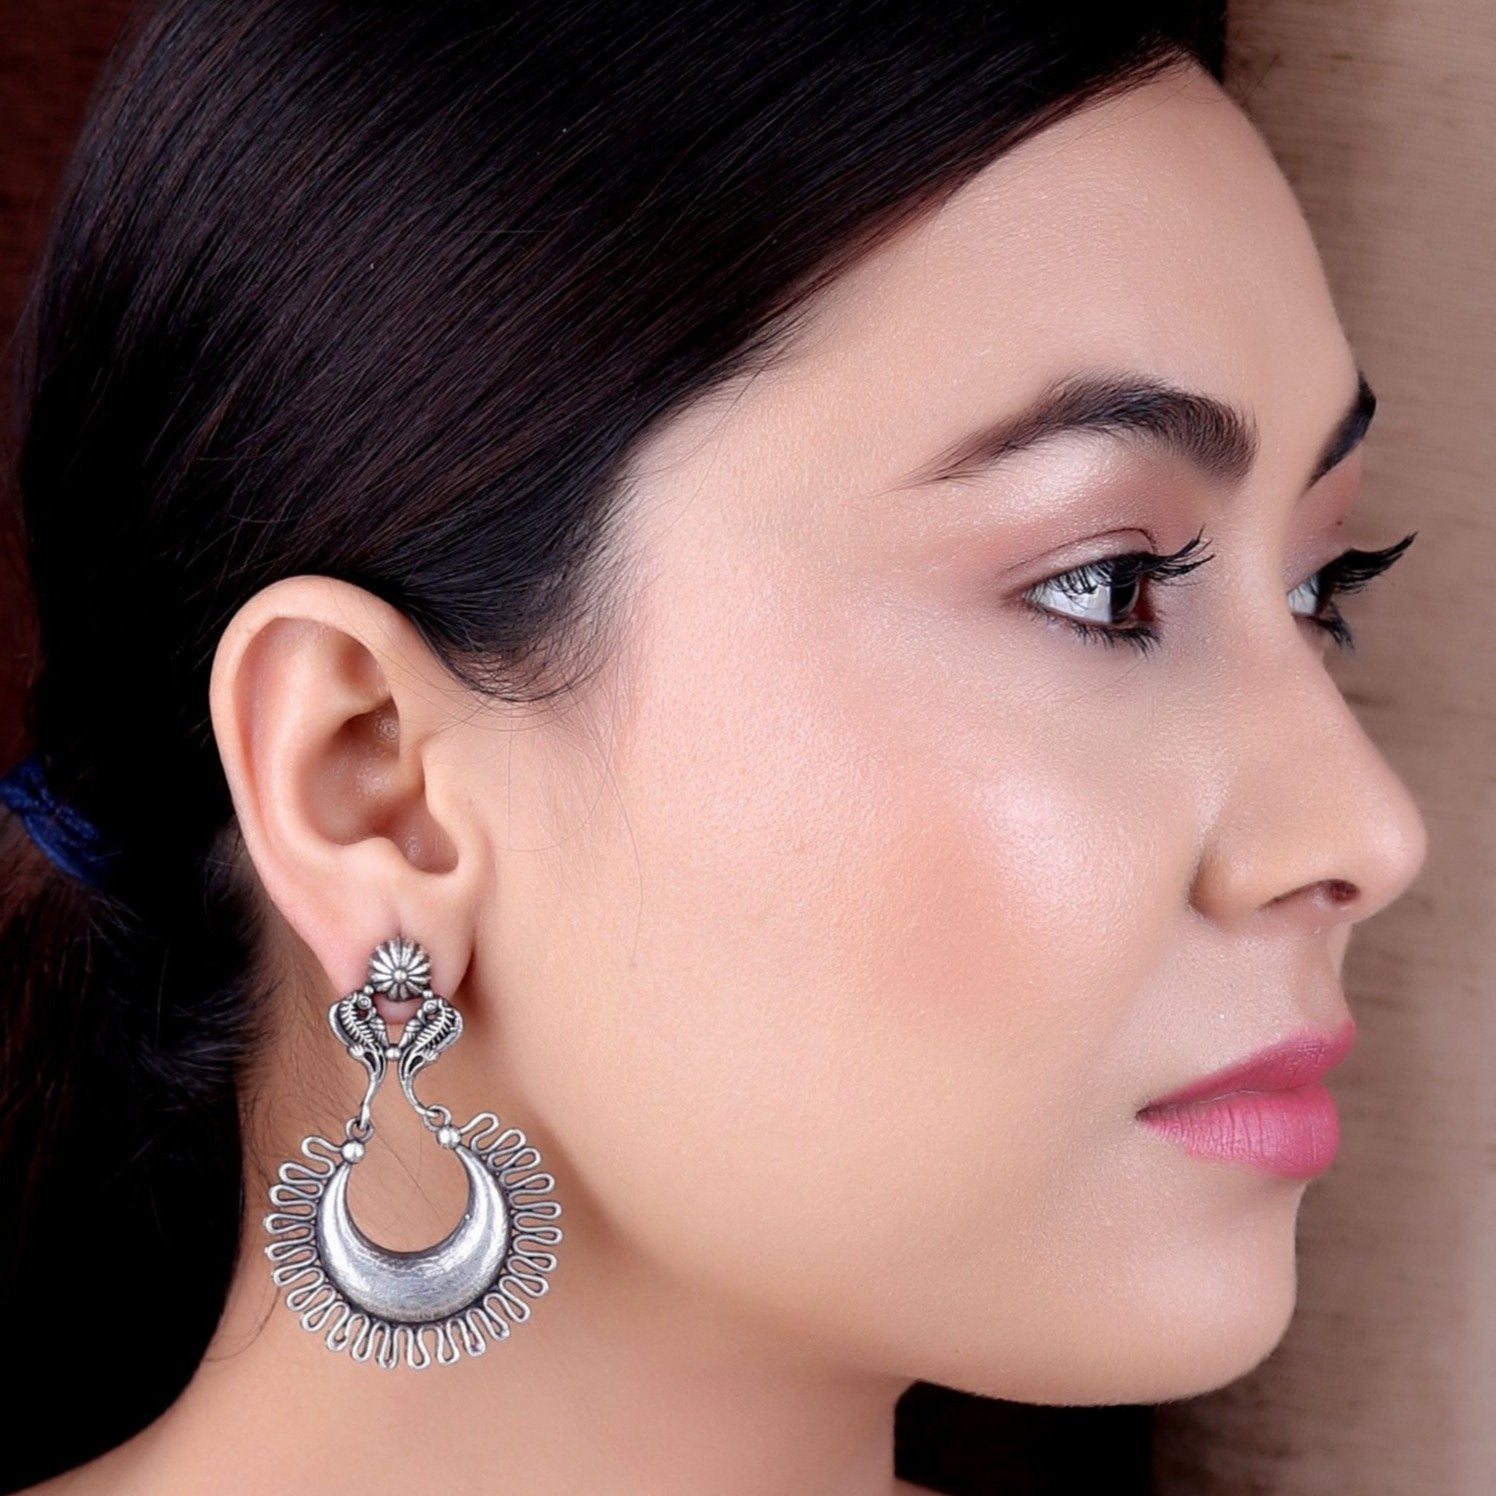 Earrings,The Fenced Crescent Silver Look Alike Earrings - Cippele Multi Store